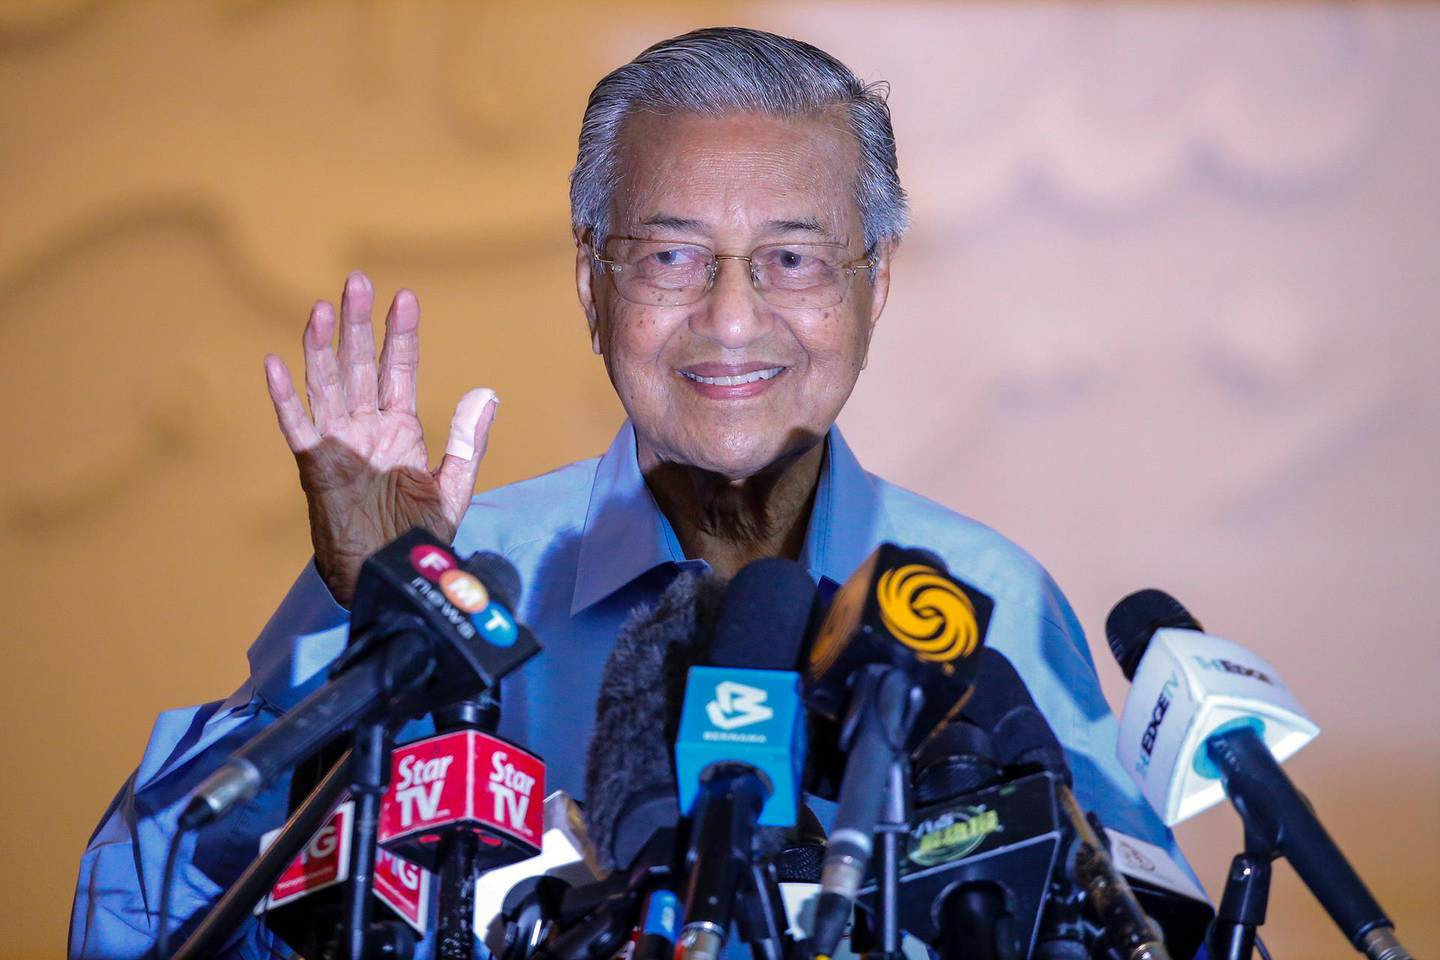 epa08261071 A former Malaysia Prime Minister Mahathir Mohammad speaks to the media during a press conference in Kuala Lumpur, Malaysia, 01 March 2020. The Yang di-Pertuan Agong, the ruling monarch of Malaysia, Abdullah of Pahang appointed Muhyiddin Yassin as the country's new premier on 29 February 2020, following the resignation of his predecessor, 94-year-old Mahathir Mohamad, a week earlier.  EPA/FAZRY ISMAIL